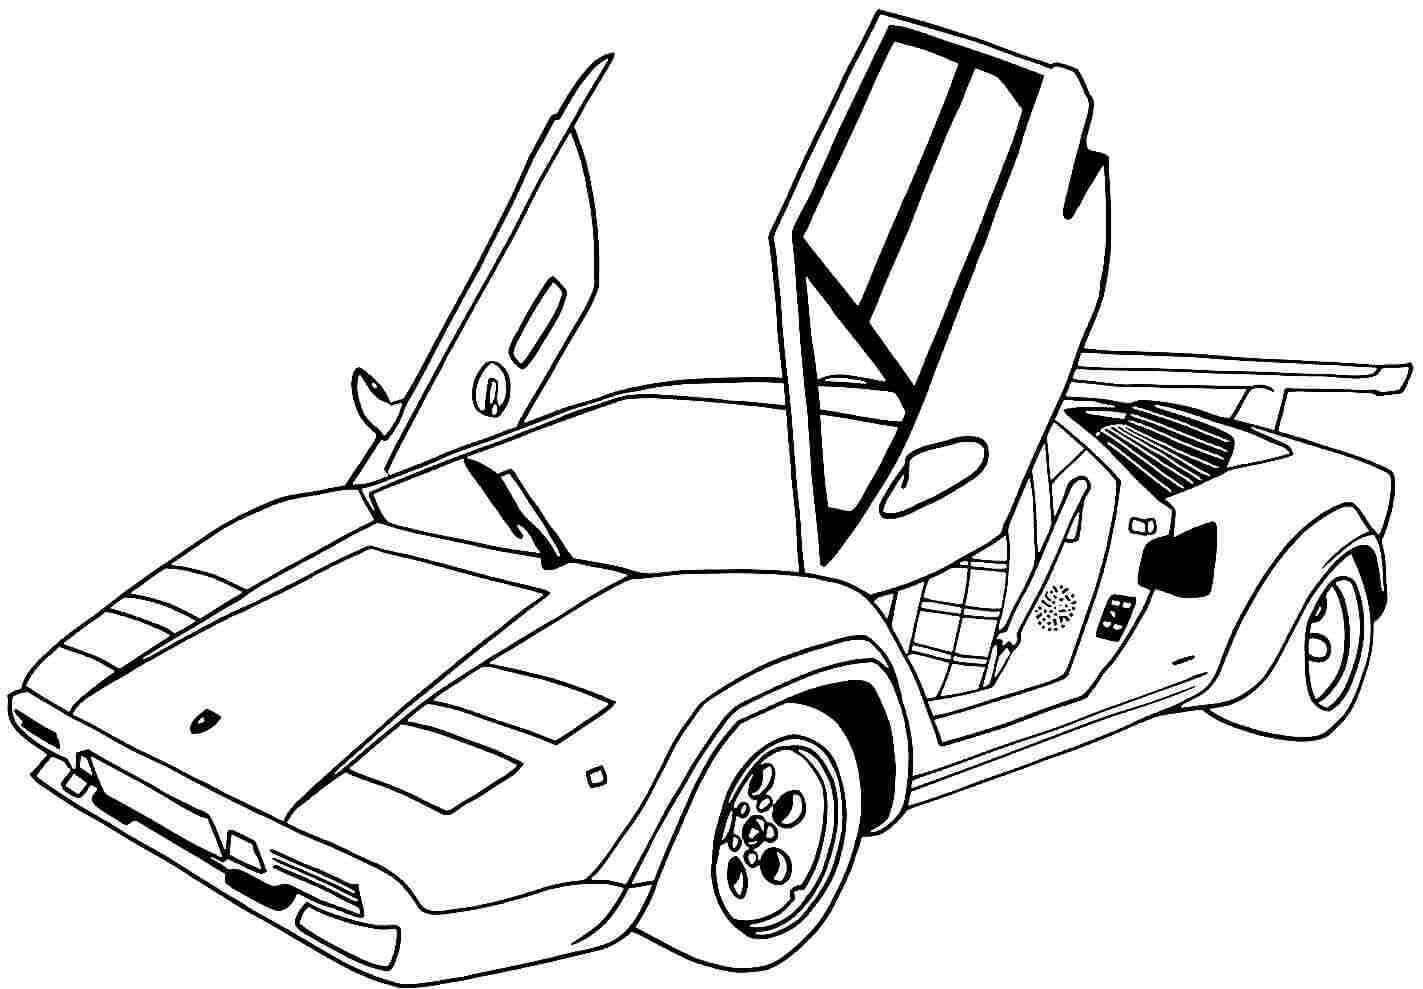 car pictures to colour in chevy cars coloring pages download and print for free car to pictures in colour